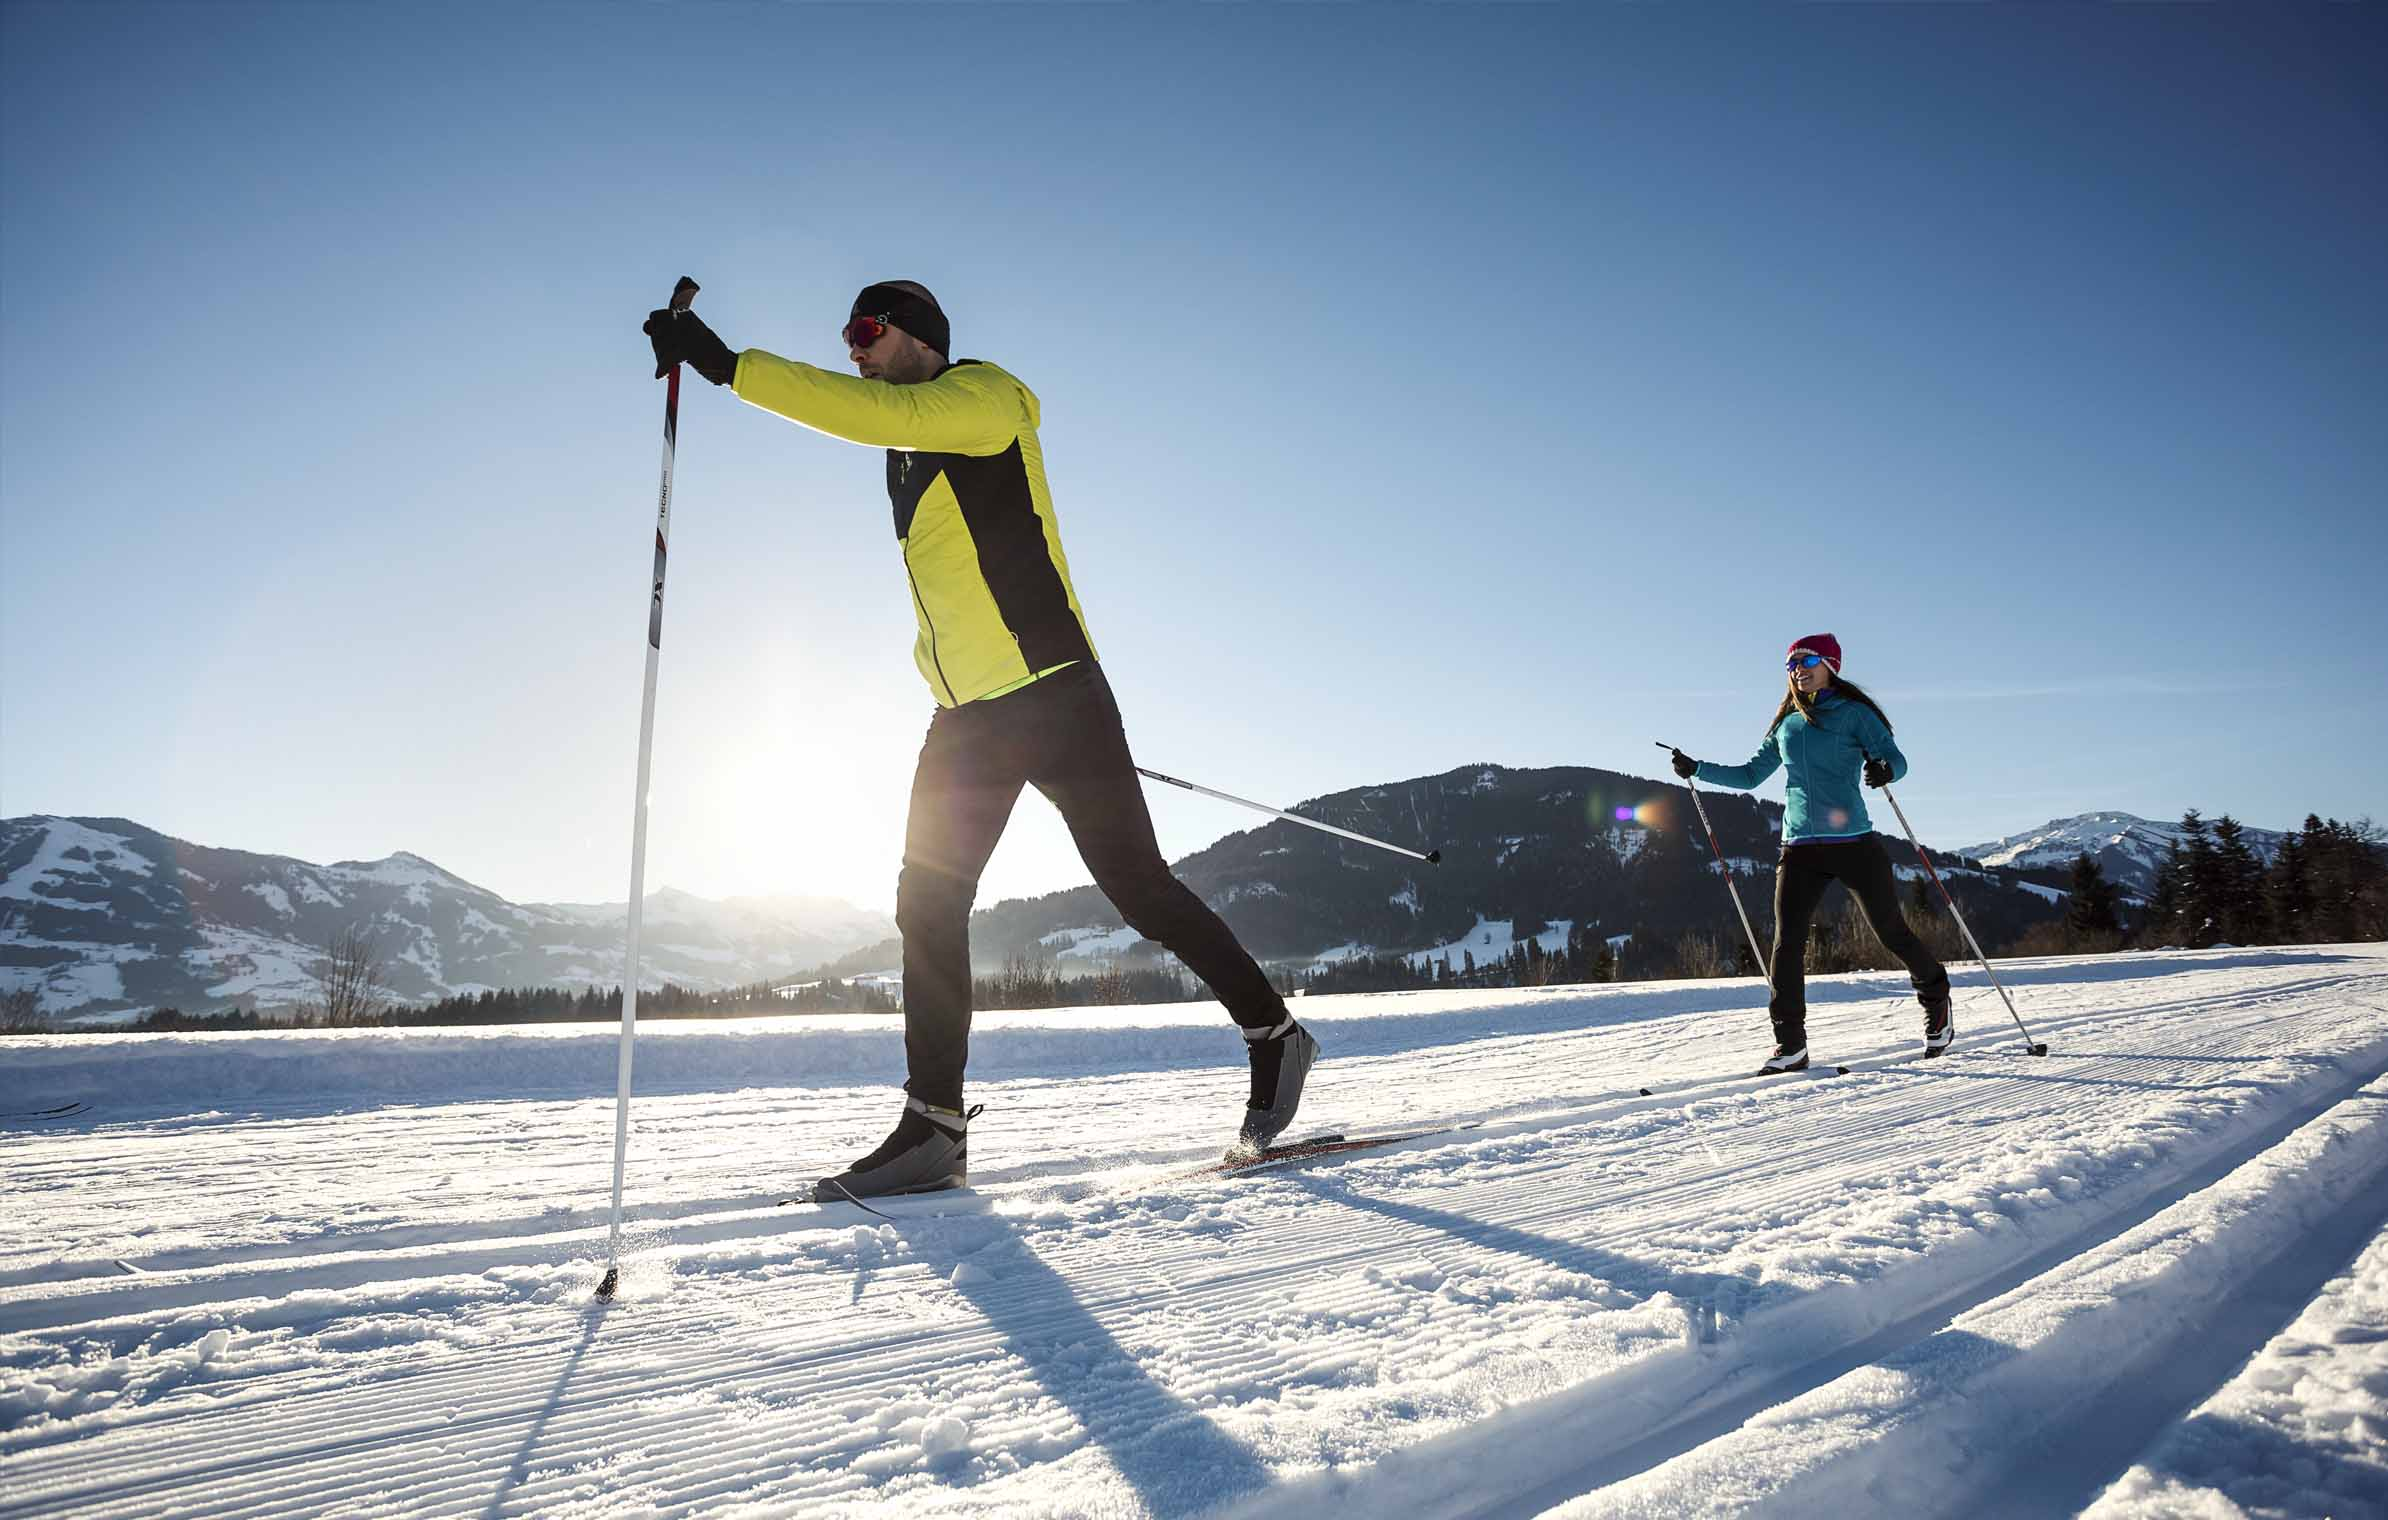 Sporthotel_HoheSalve_workout3_crosscountryskiing